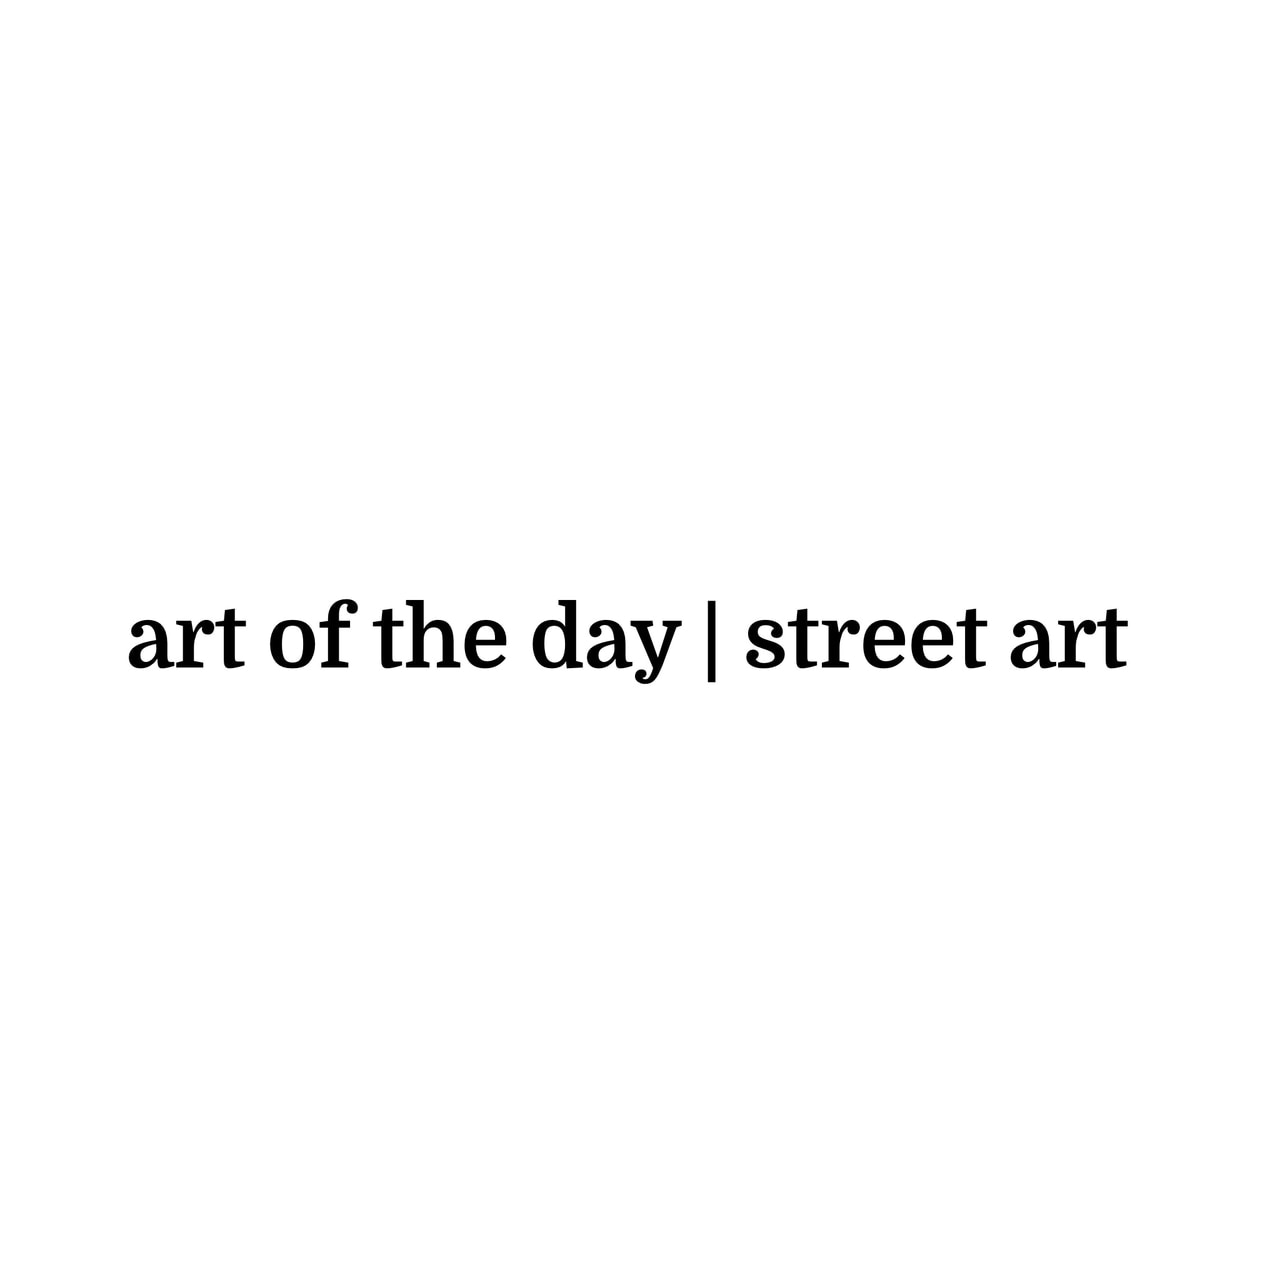 art, street art, and article image